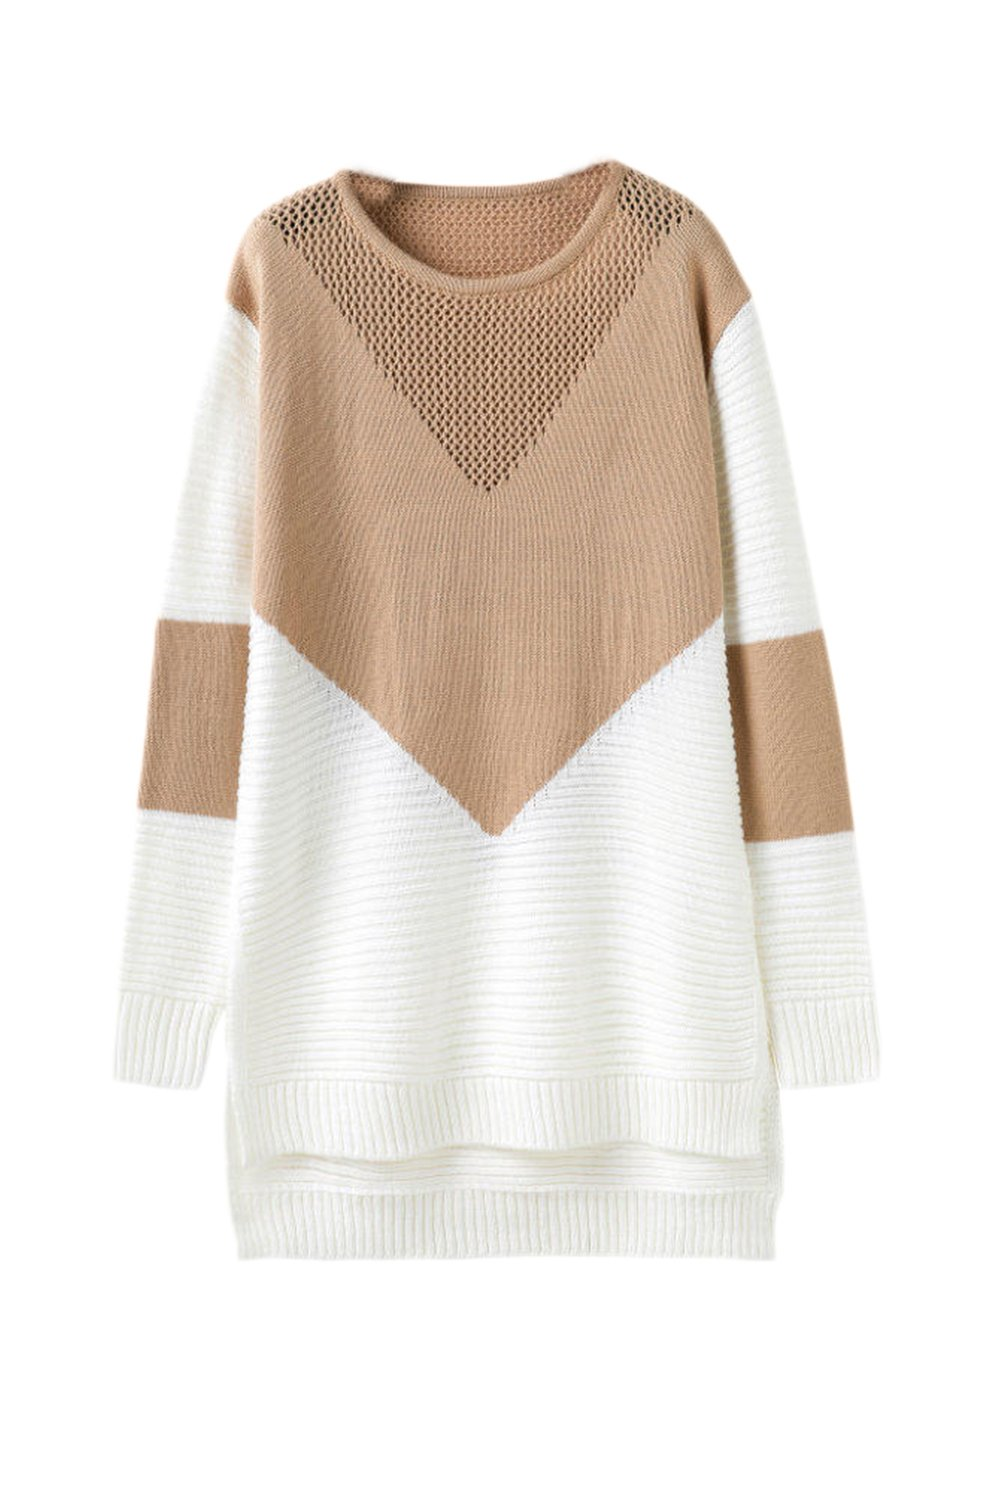 Women Winter Casual Colorblock Hollow Out Midi Side Slit Knit Sweater CAFZ1497